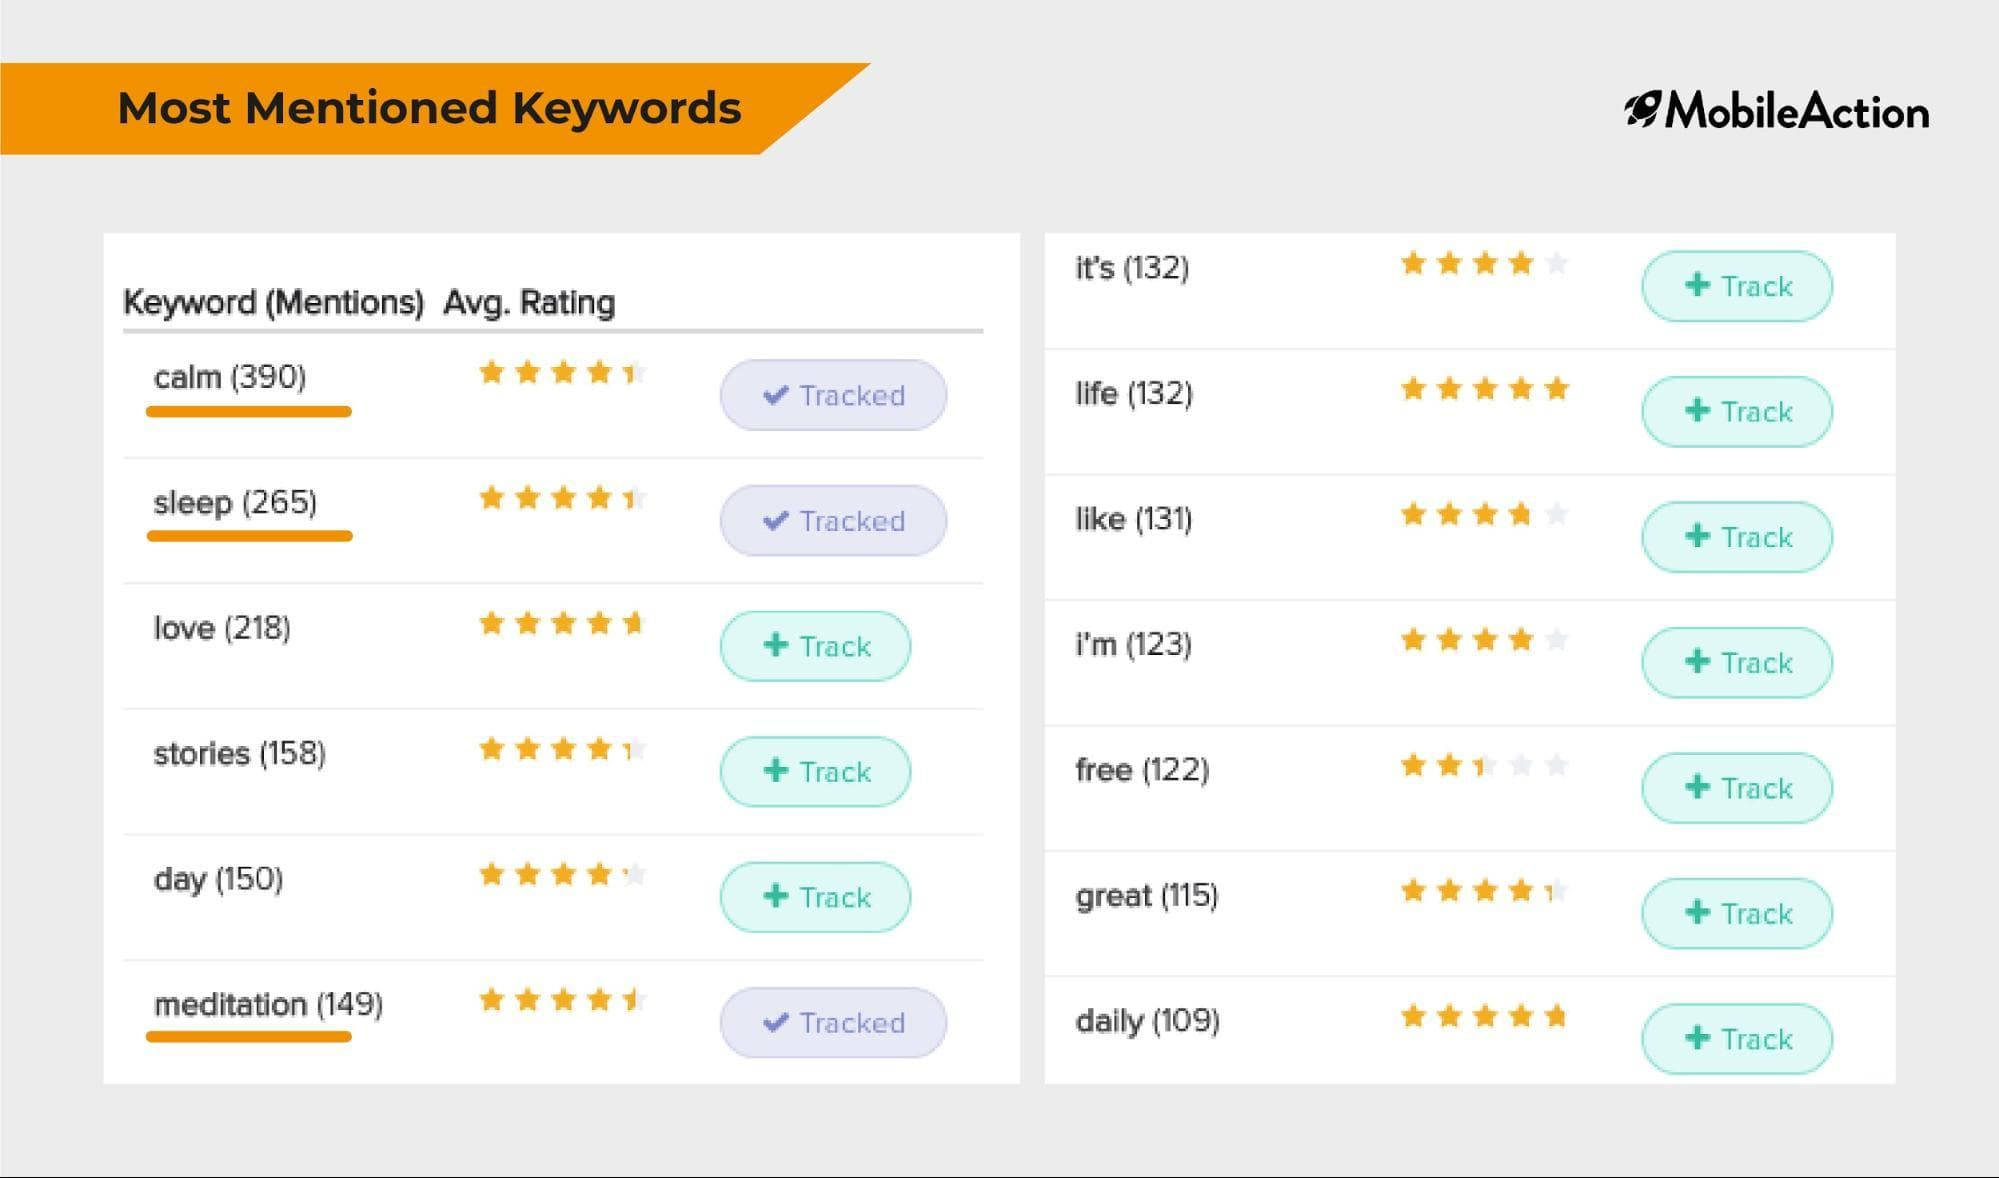 Most Mentioned Keywords in App Reviews